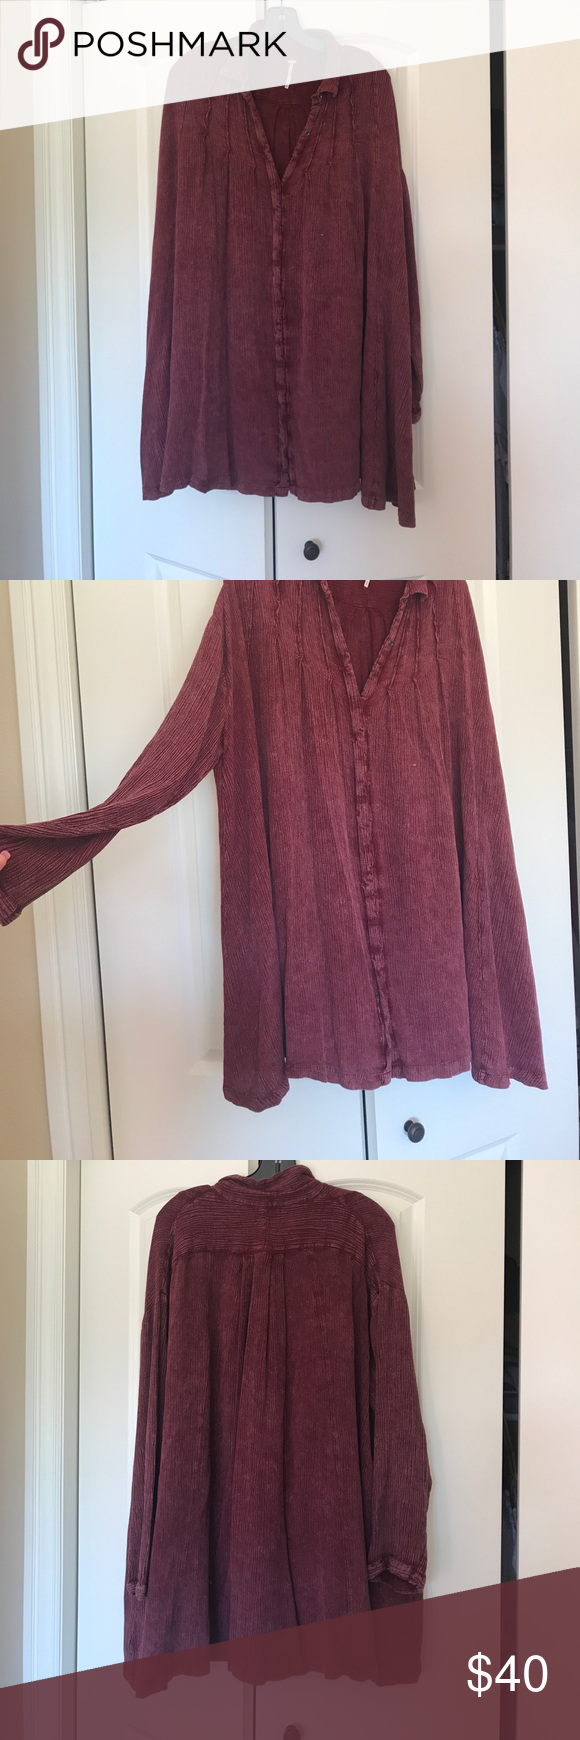 FREE PEOPLE FLOWY TOP Excellent Used Condition! So free & flowy! I bought this in two colors I loved it so much! 🙈 Oversized! Free People Tops Tunics